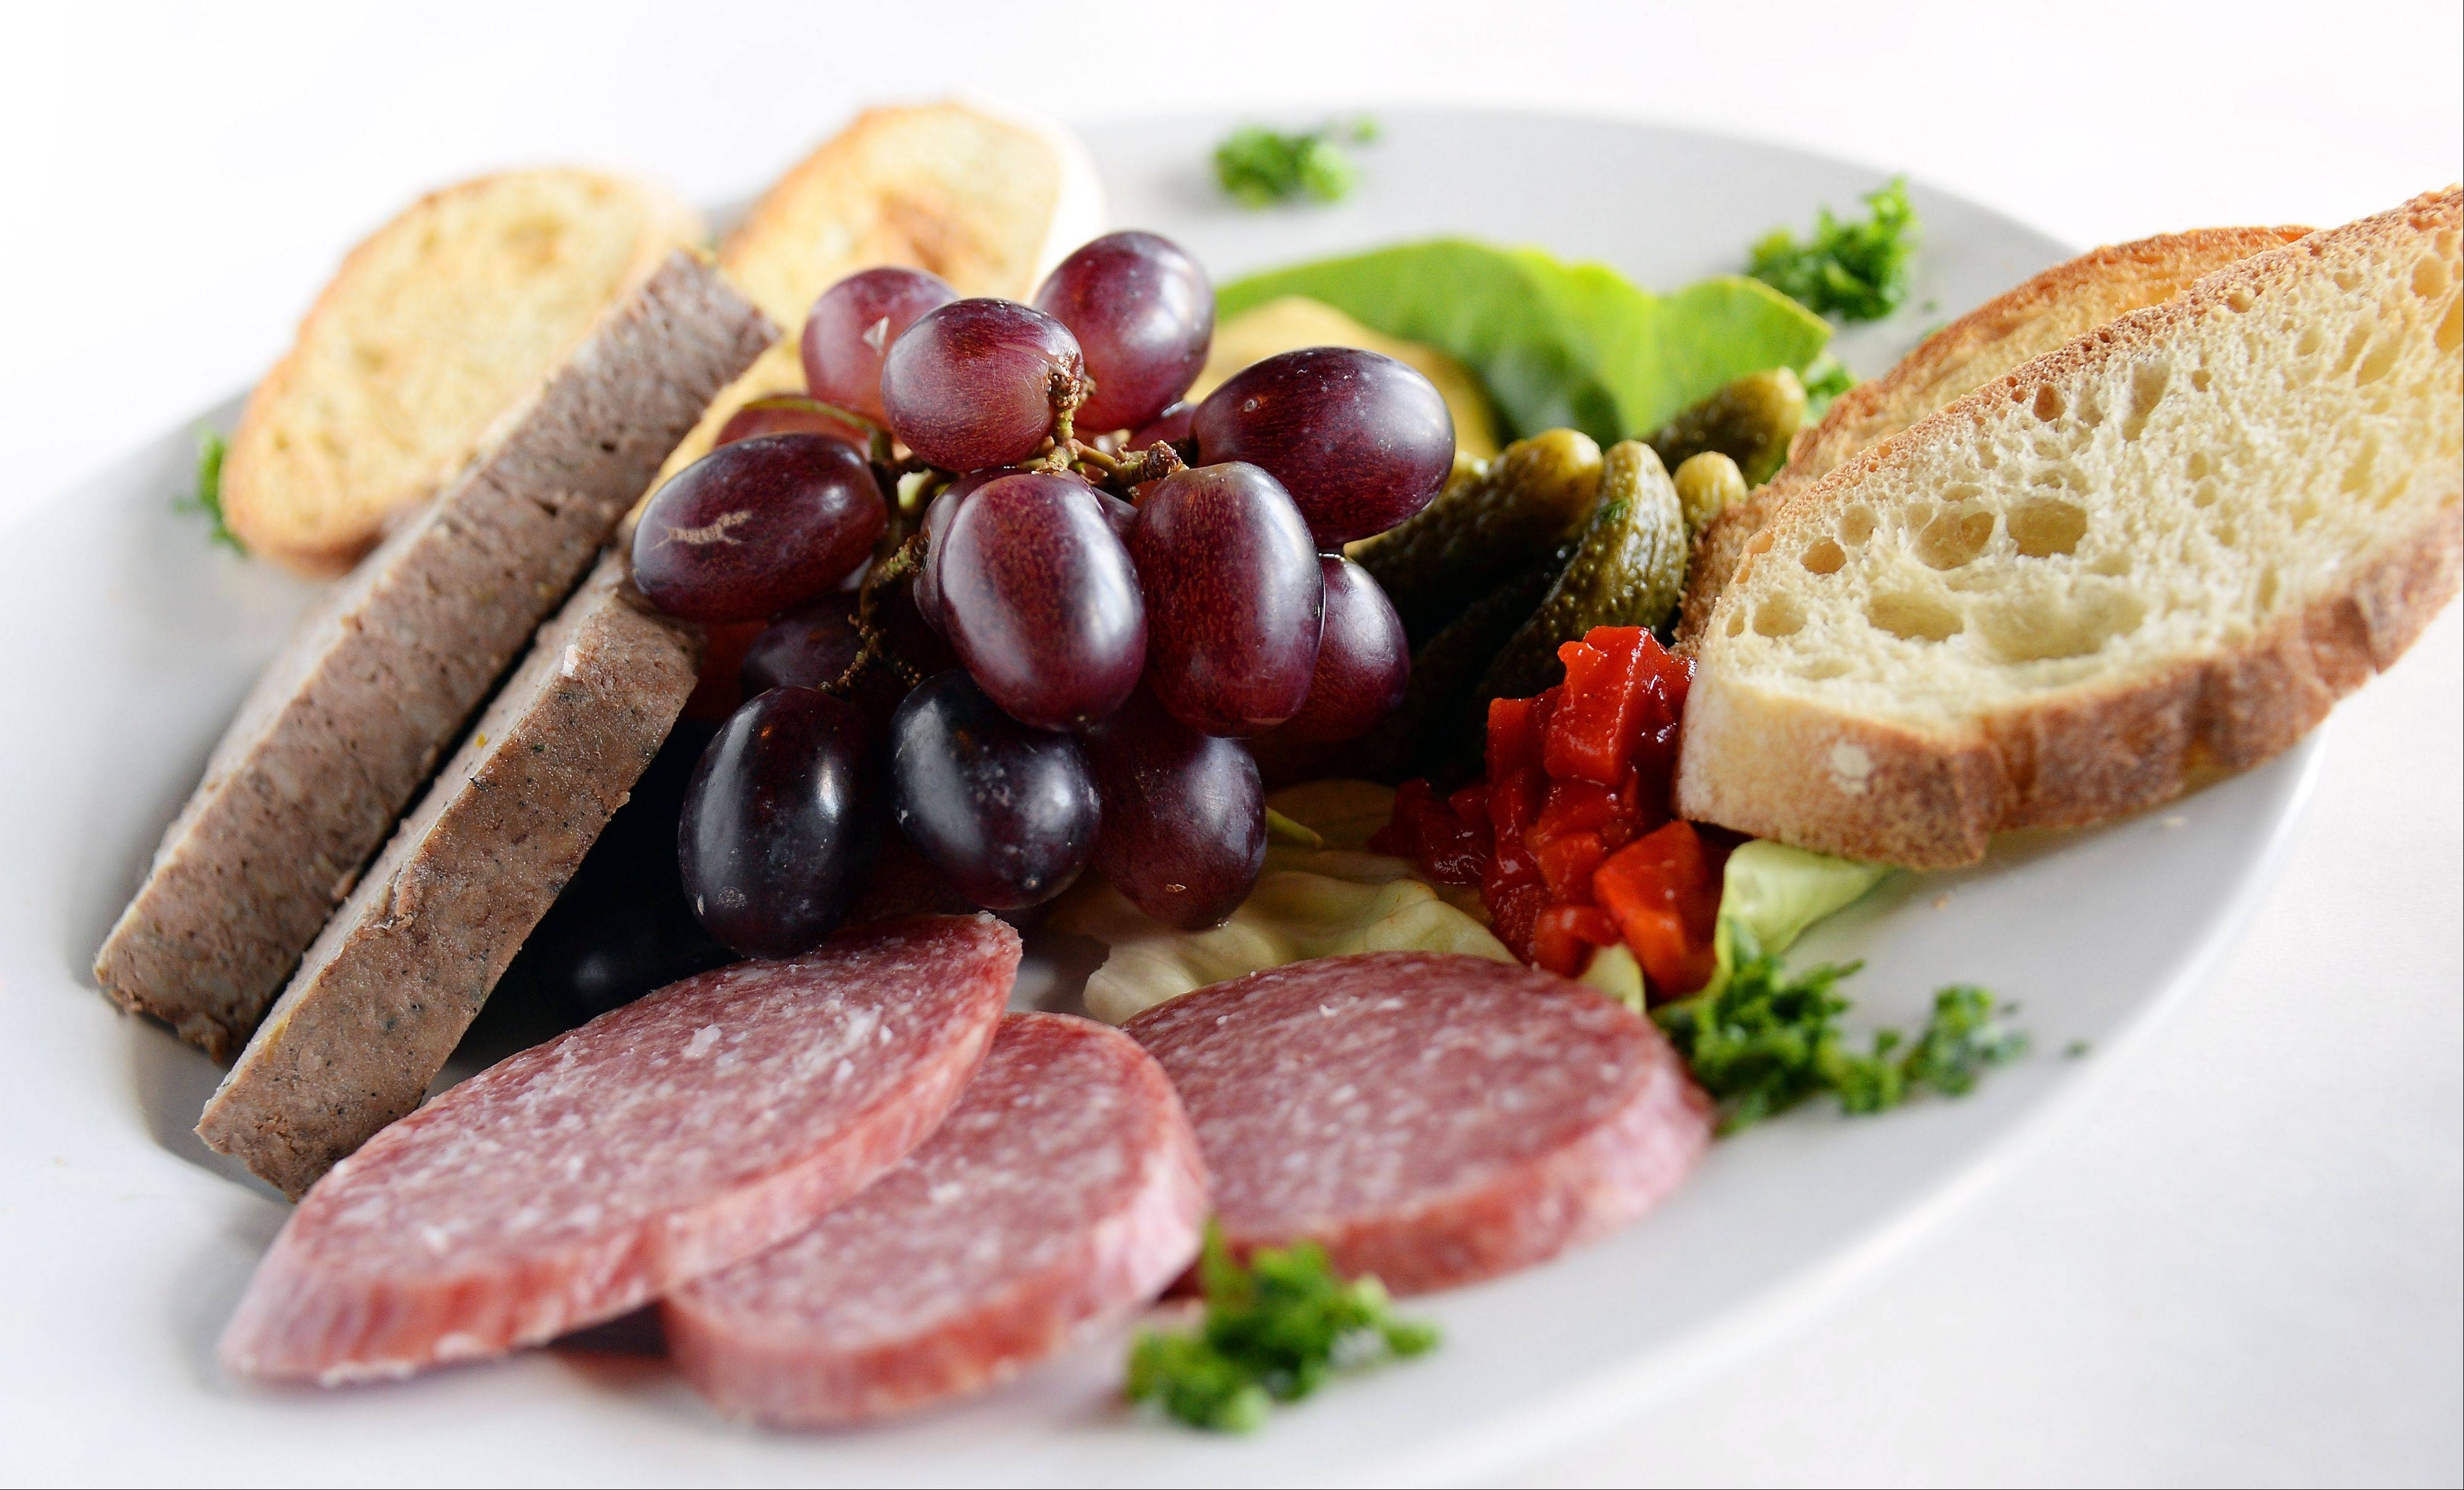 Homemade pate and sausages are available at Retro Bistro in Mount Prospect.